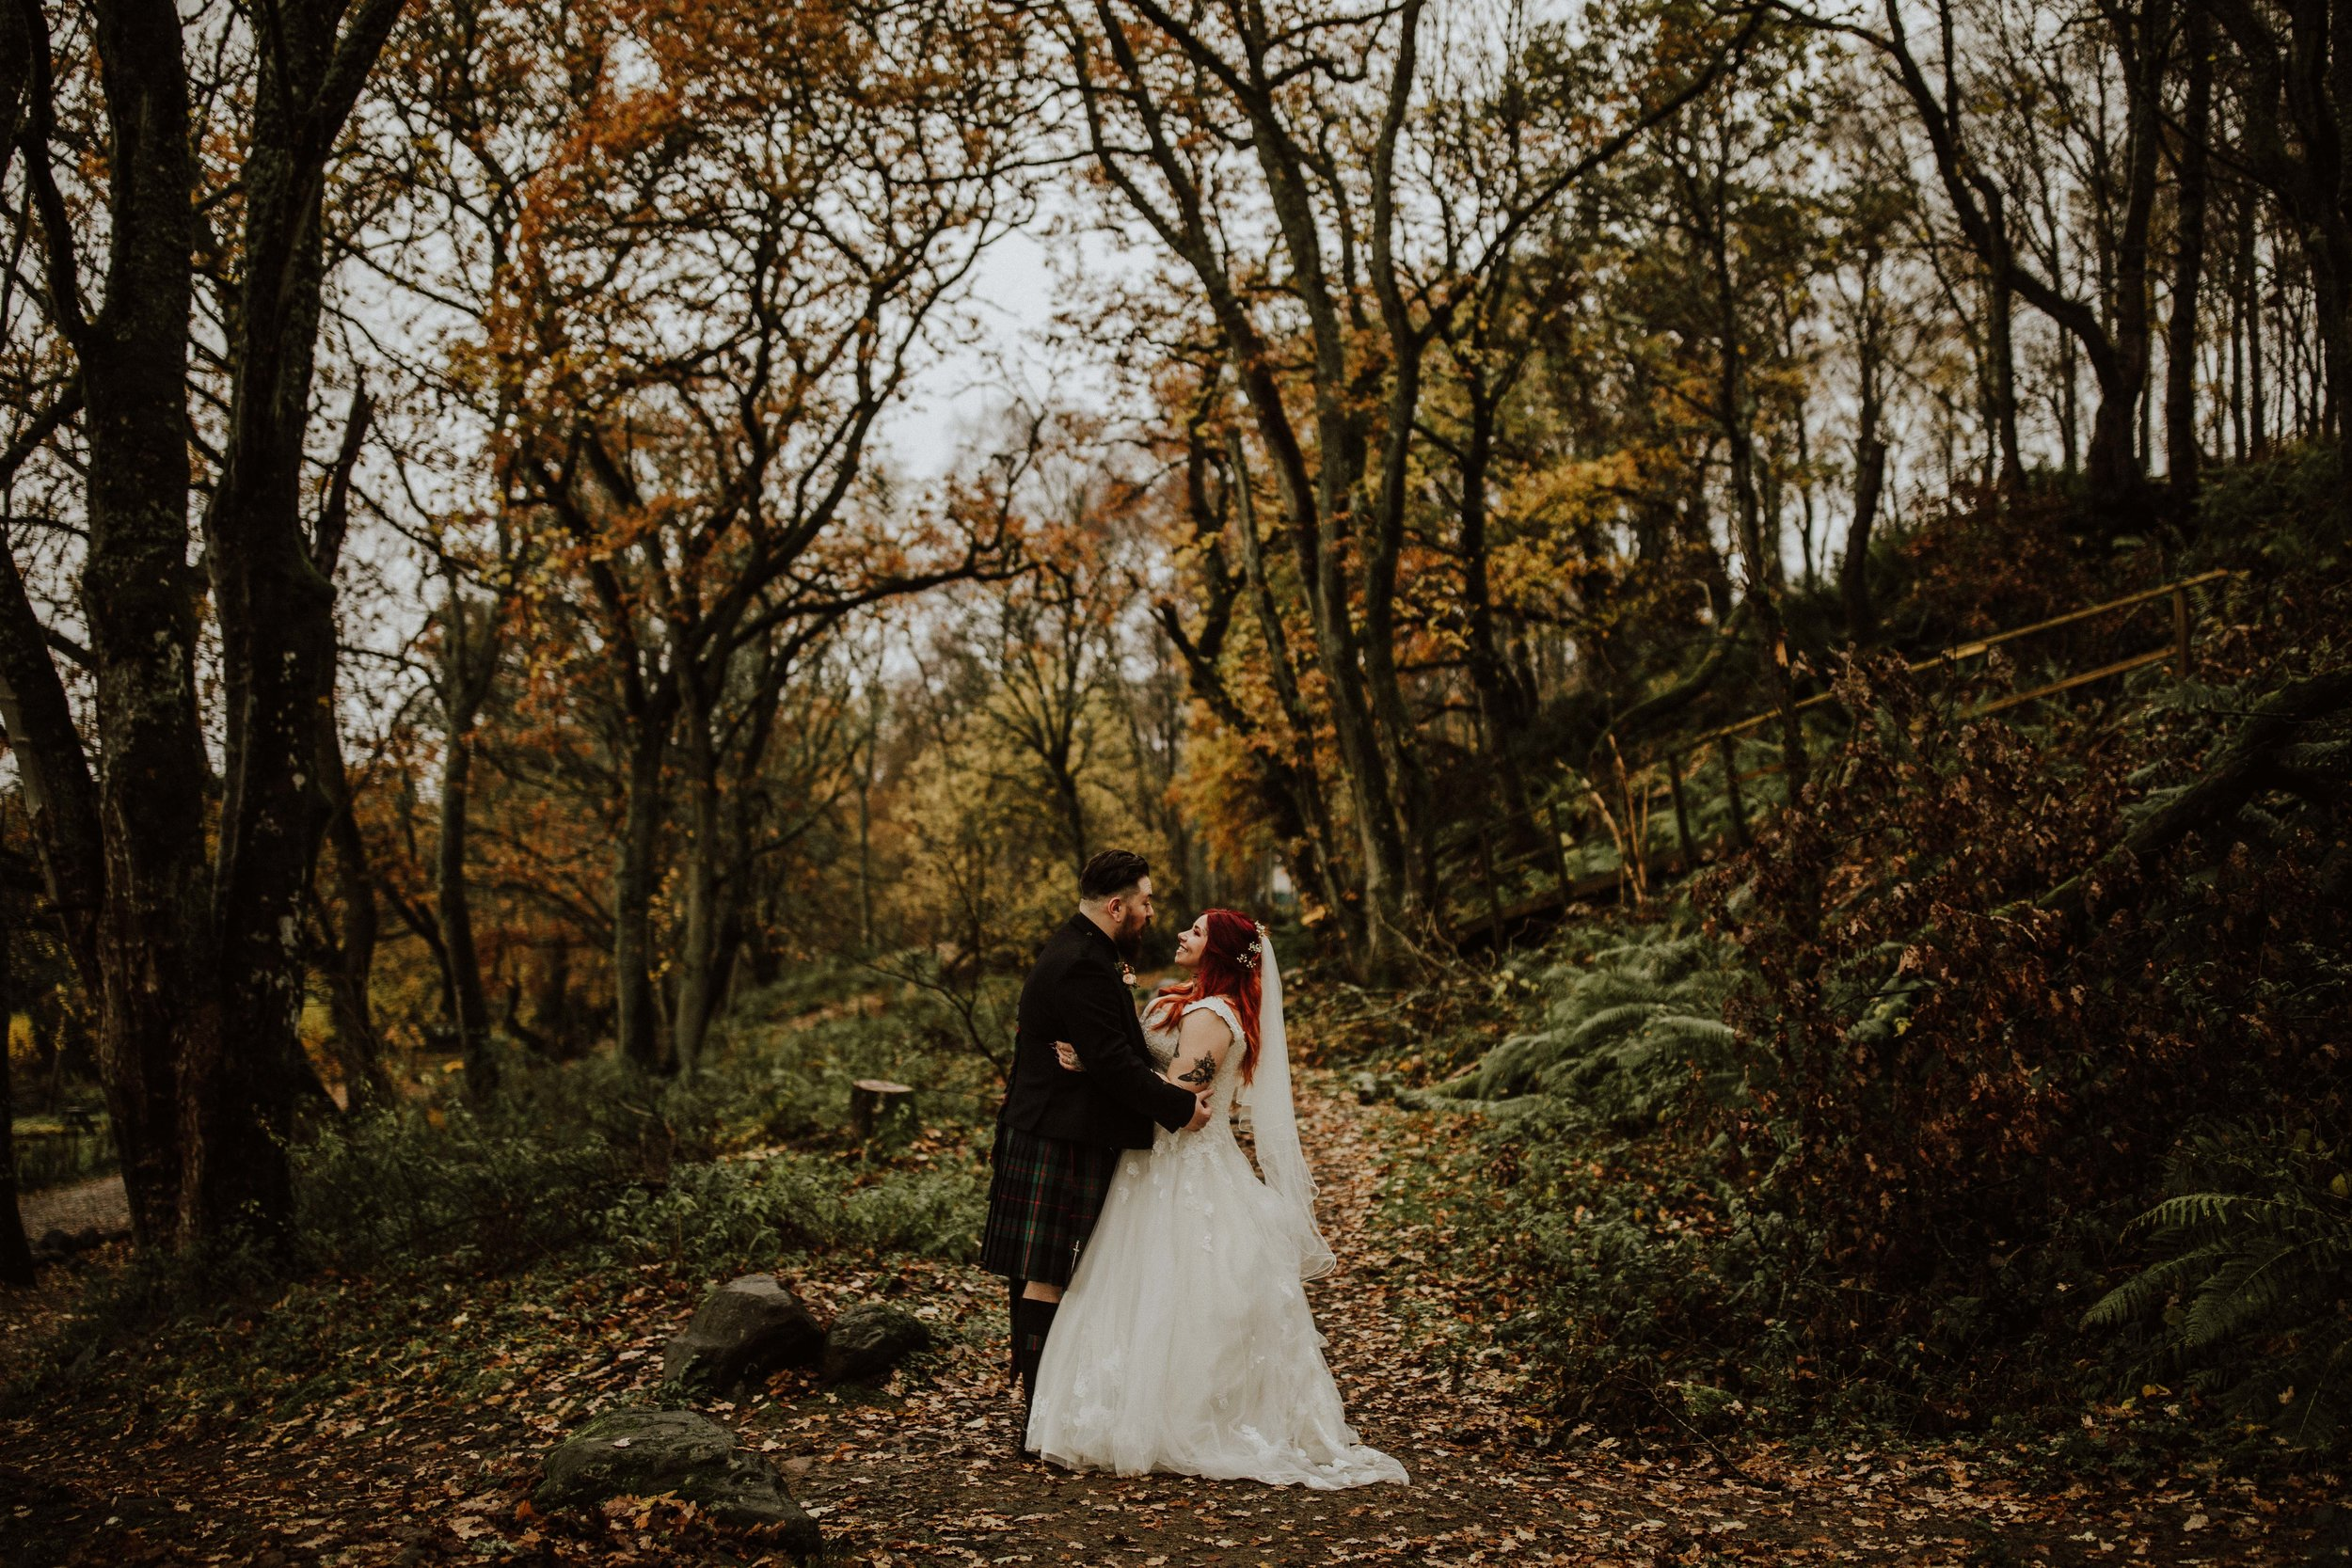 Connor + Ellie - Comrie Croft | November 2018